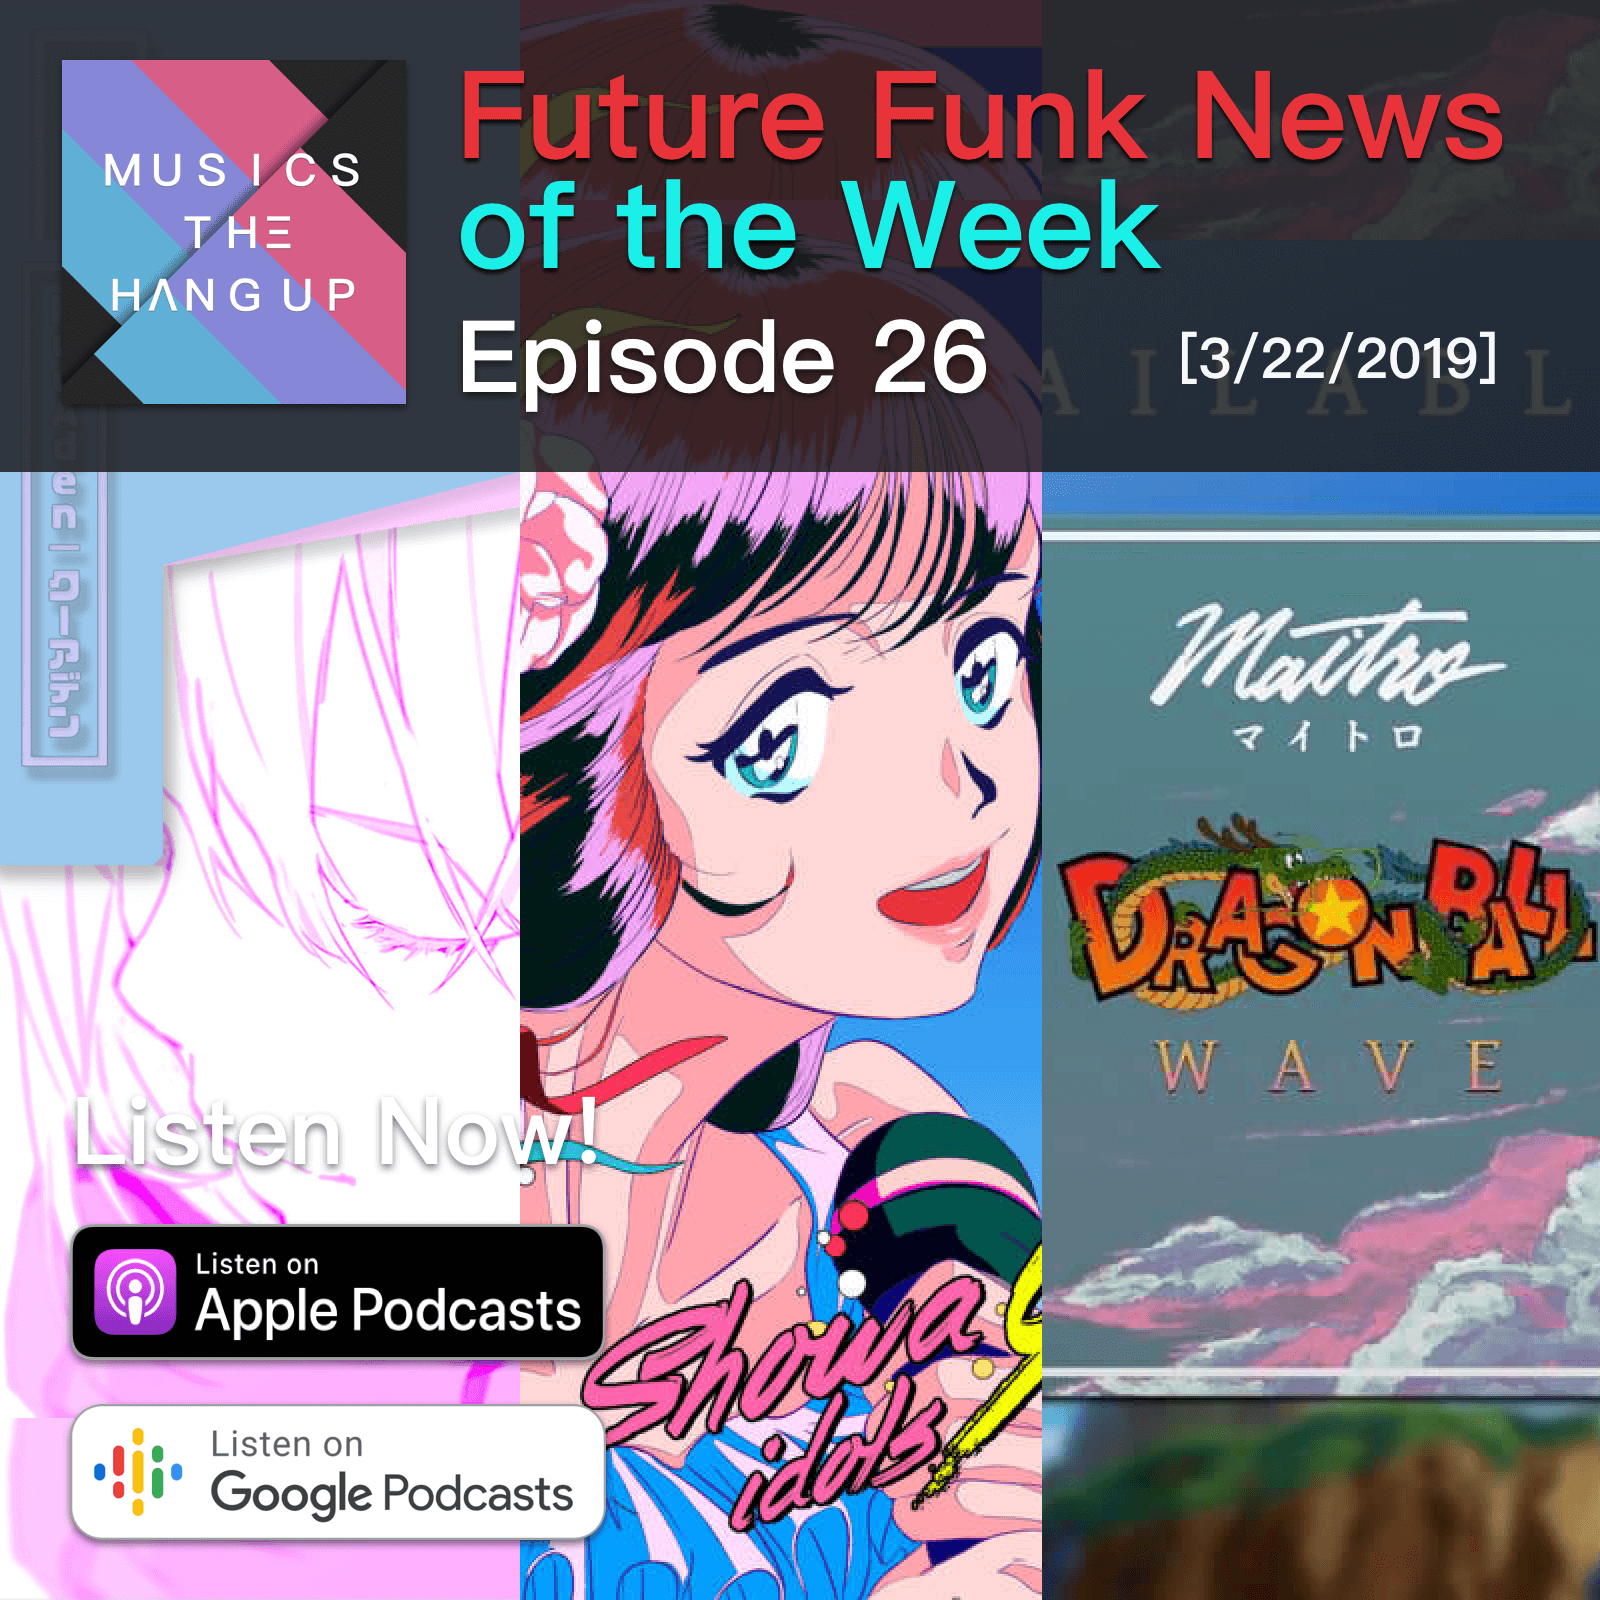 S01E26: FUTURE FUNK & VAPORWAVE NEWS OF THE WEEK – 3/22/2019